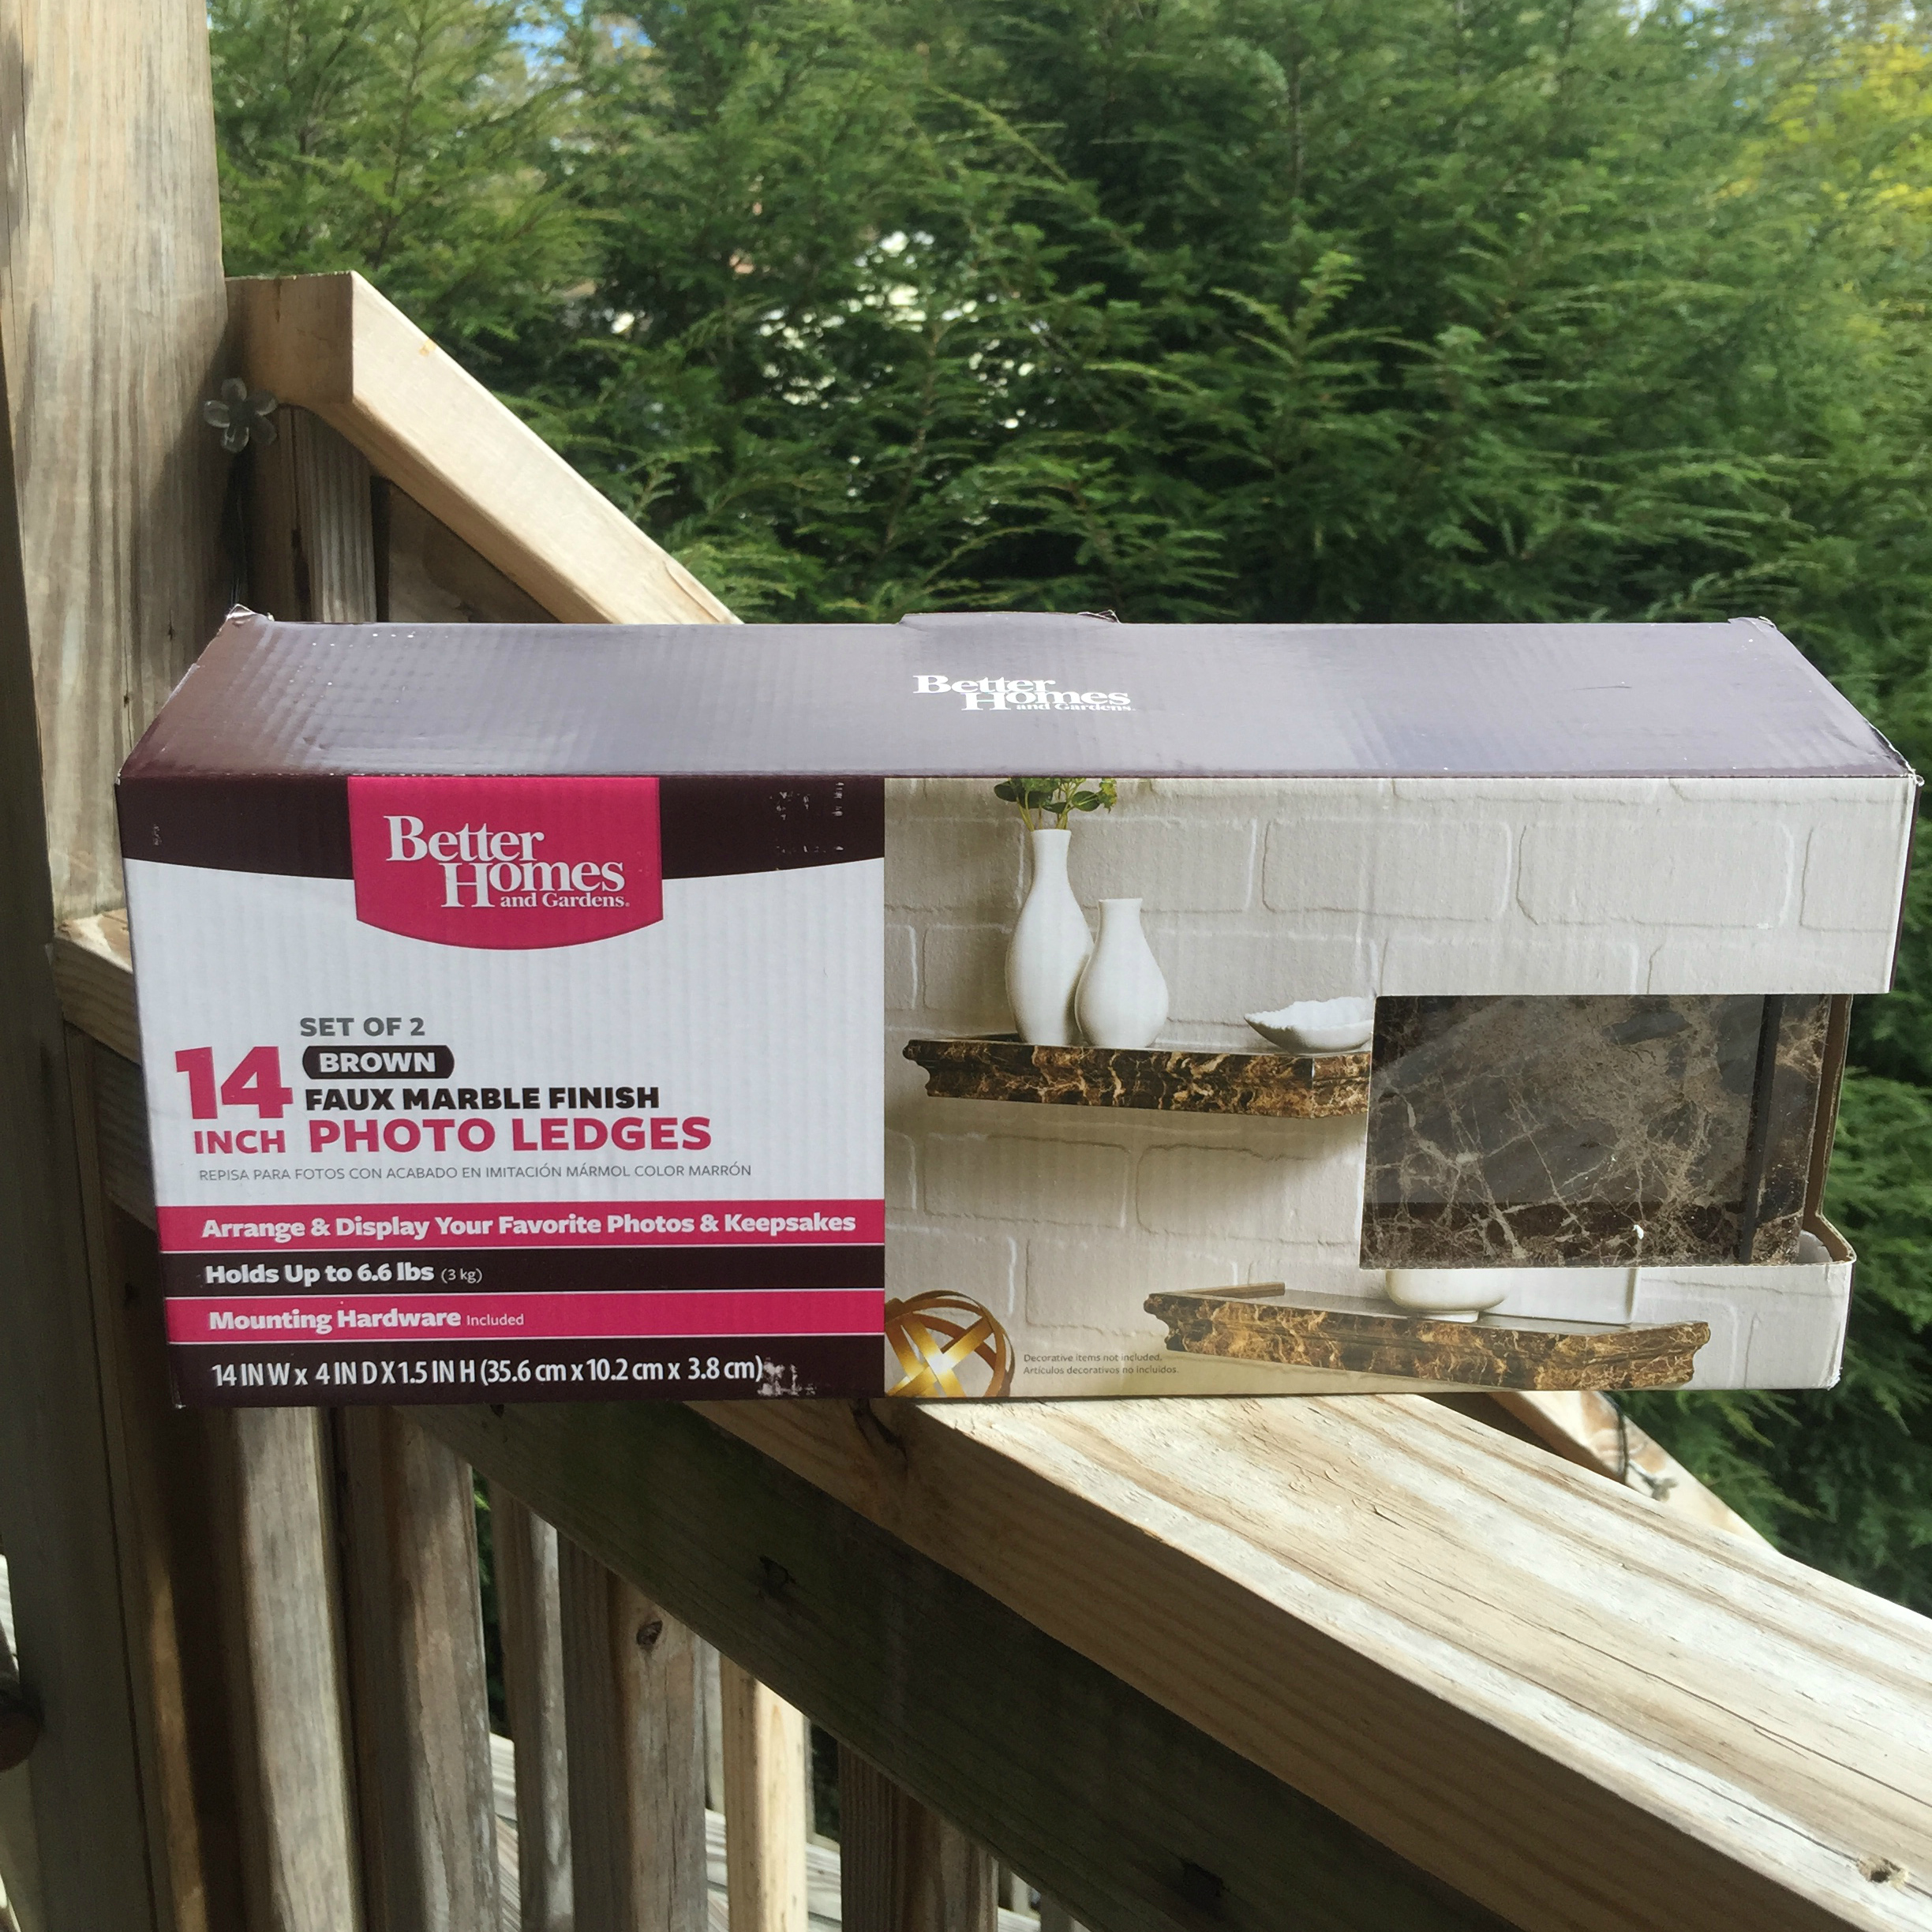 Better Homes And Gardens Floating Shelves Set The Stuff Of Success